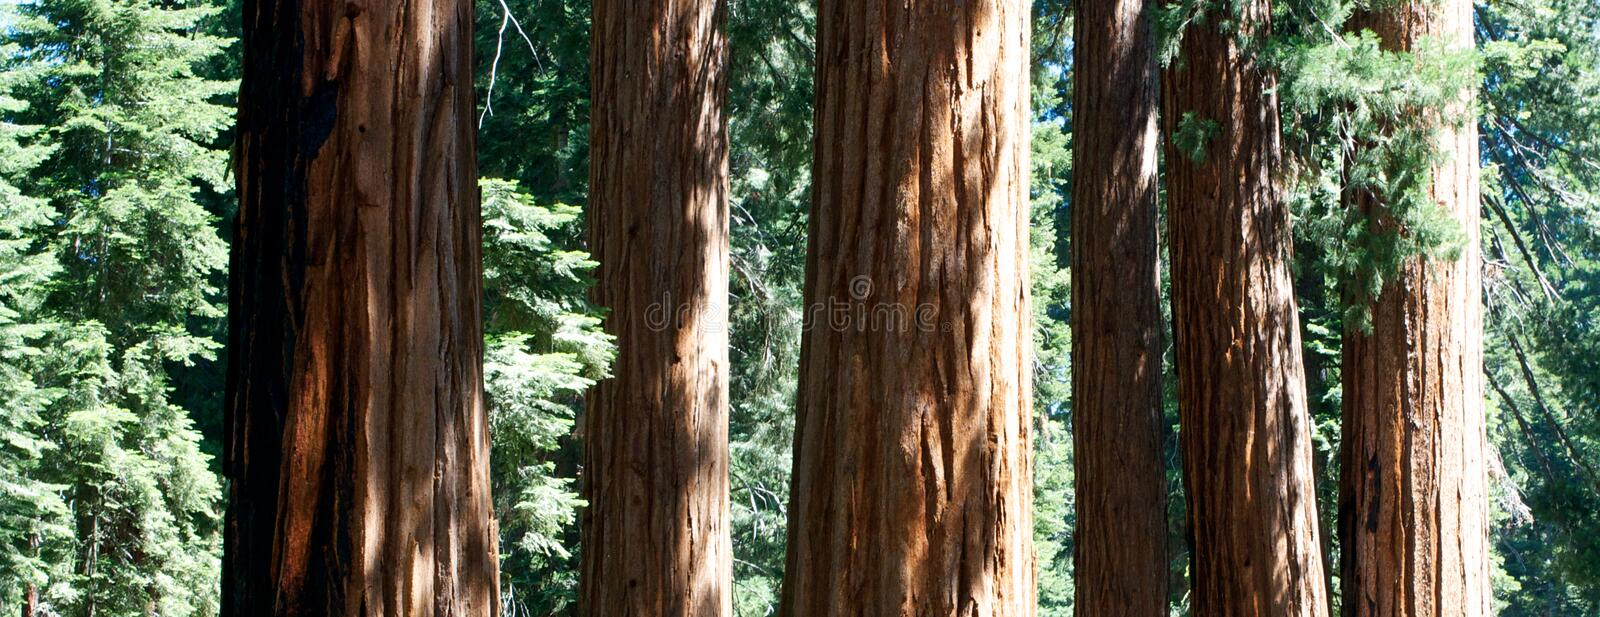 Group of Sequoia redwood trees. With tight crop stock images